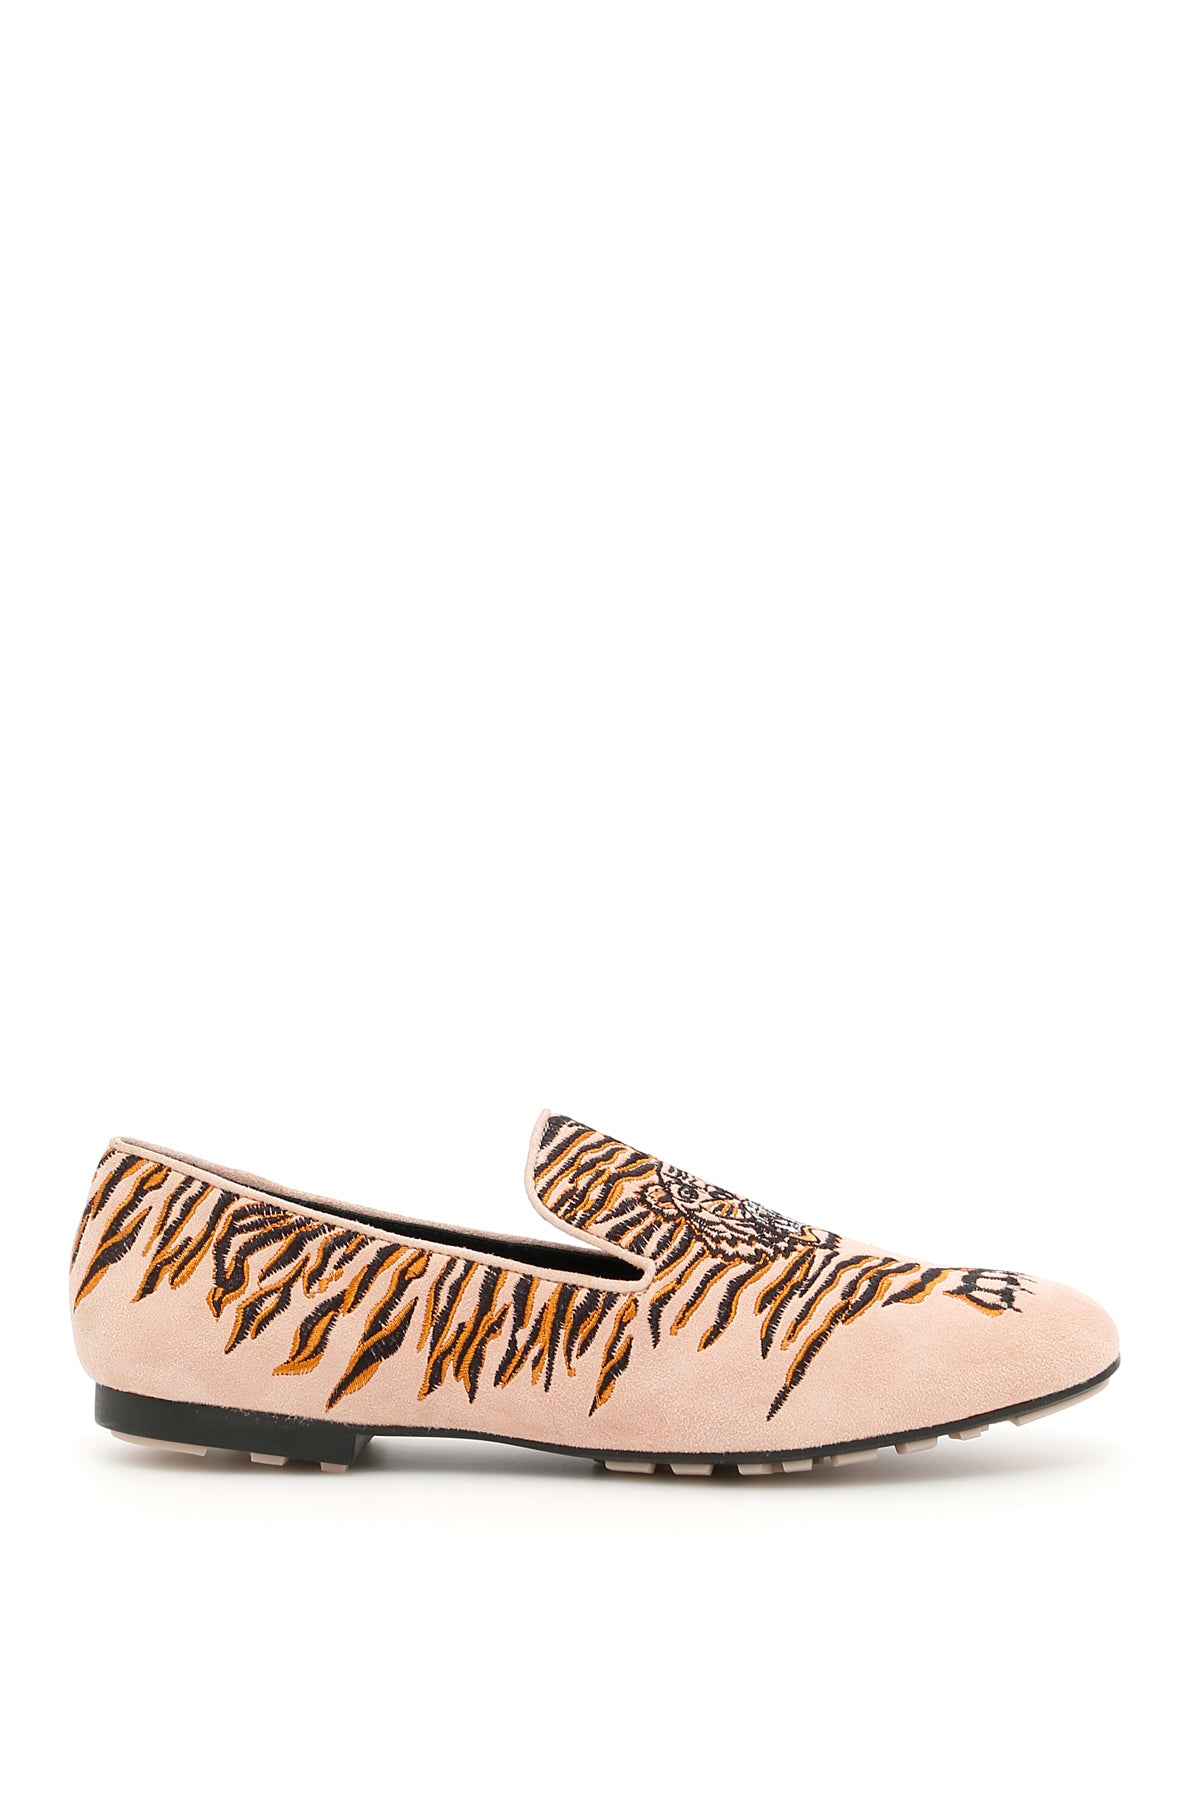 KENZO EMBROIDERED TIGER LOAFERS